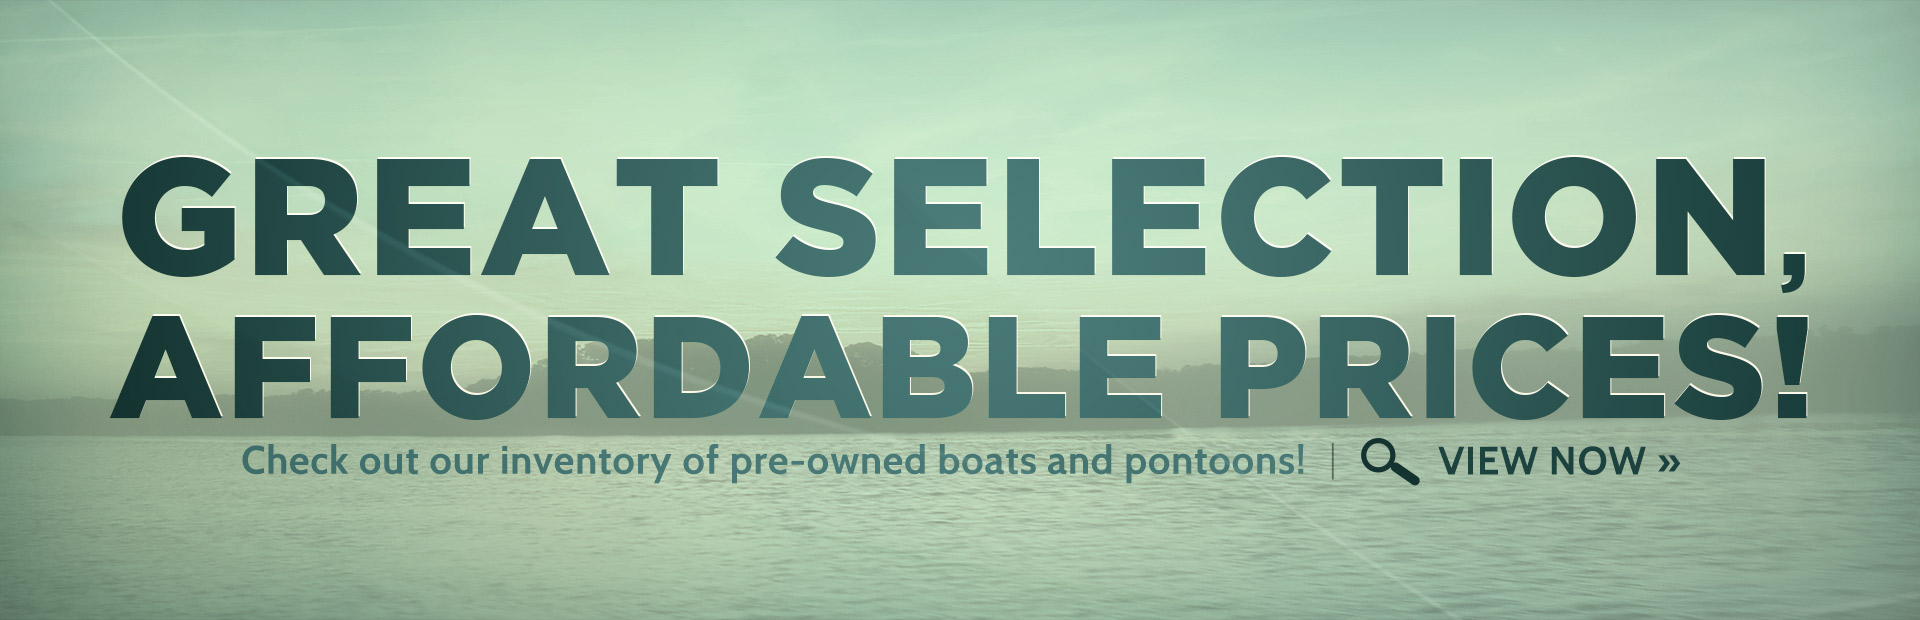 Click here to check out our great selection of pre-owned boats and pontoons at affordable prices!